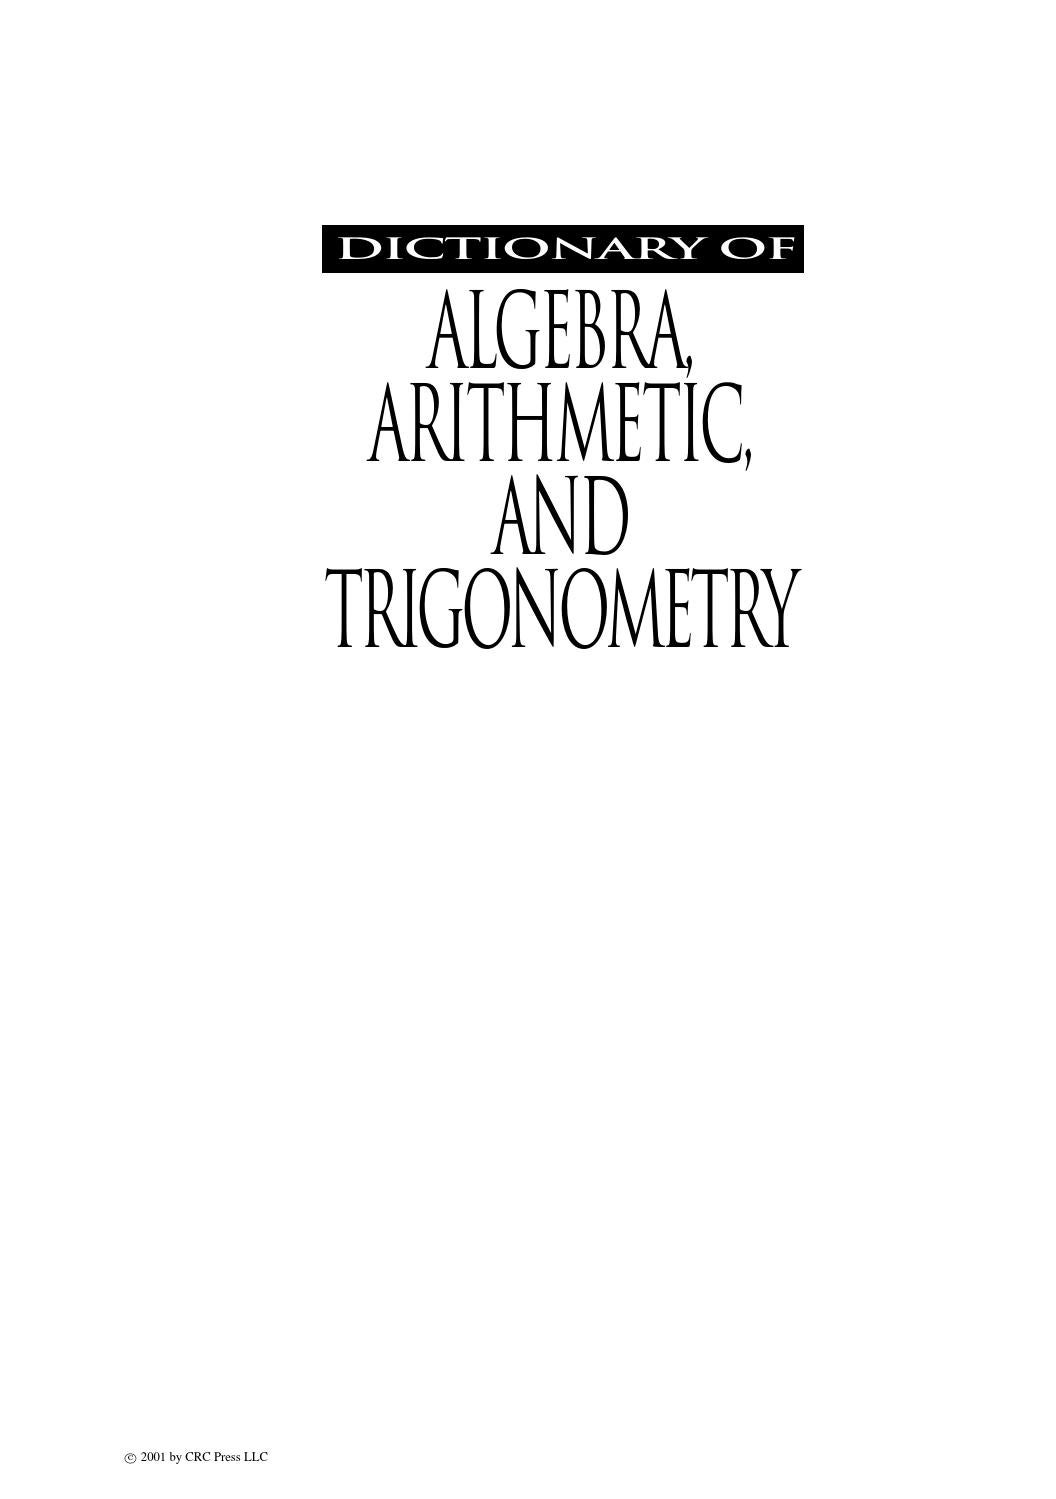 Dictionary of algebra, arithmetic, and trigonometry by